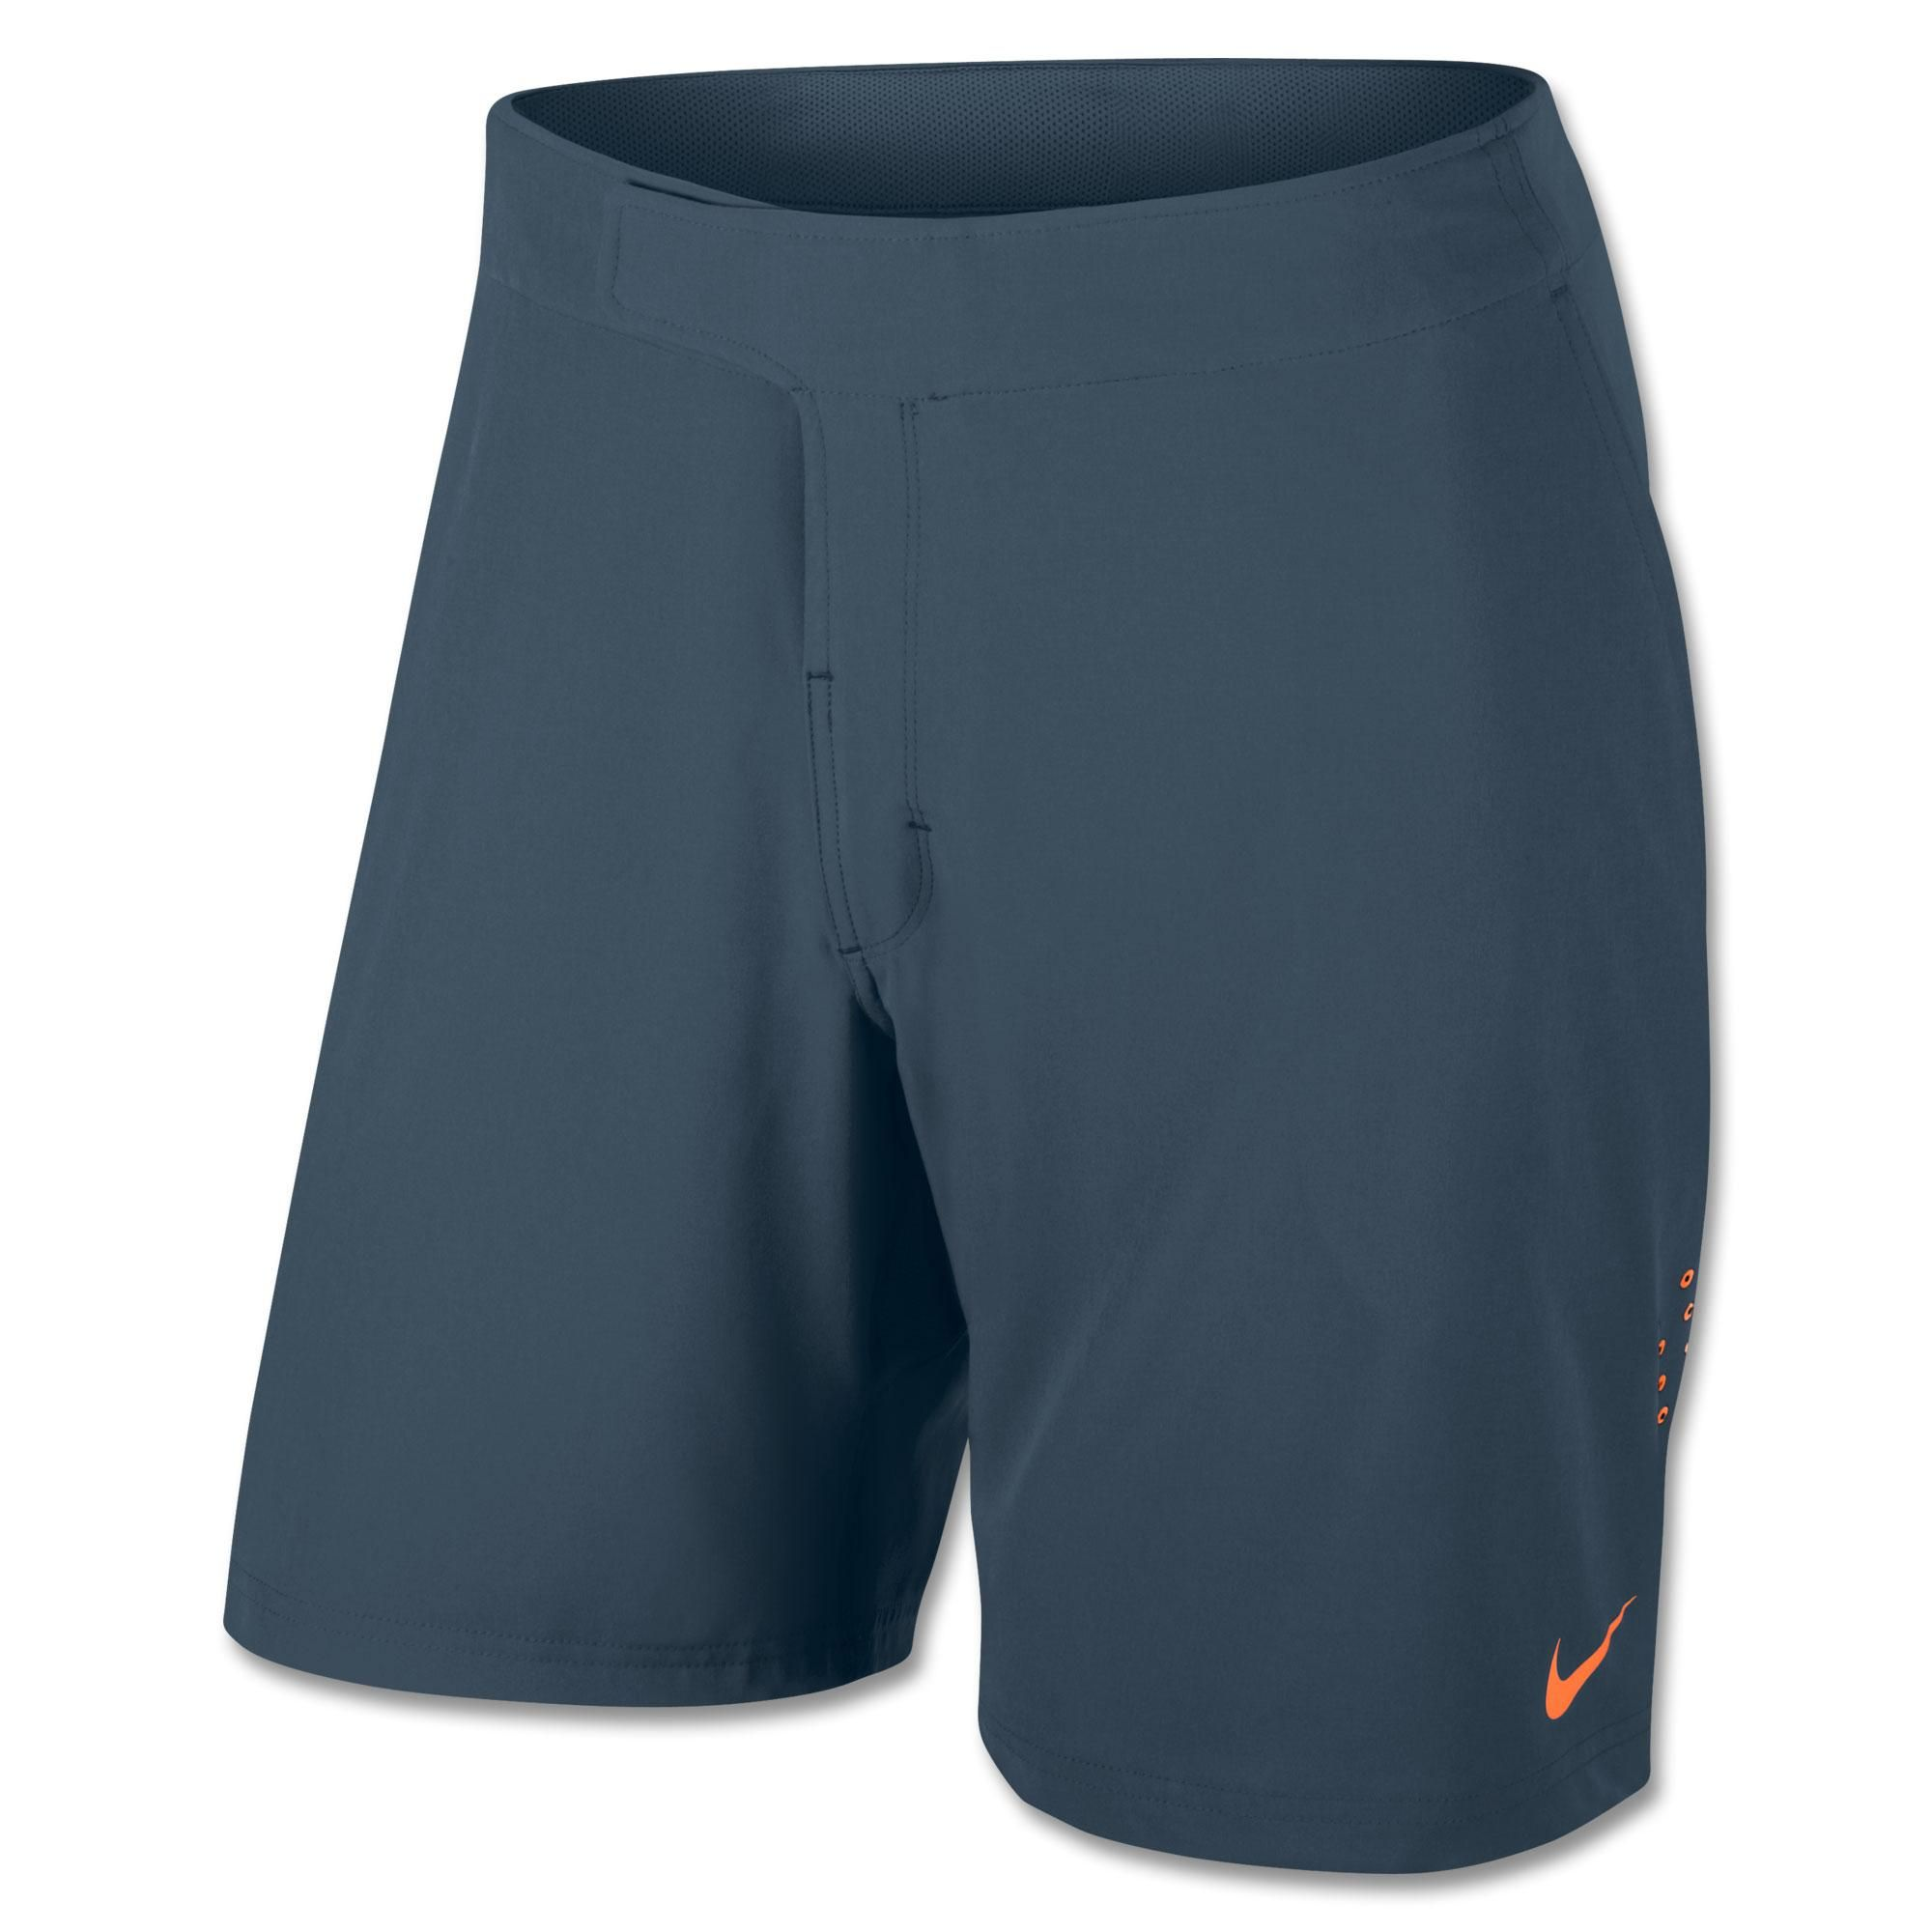 Pin by mohammad irfan on Nike,,,,   Pinterest   Nike, Tennis Shorts ... d2cef188a2